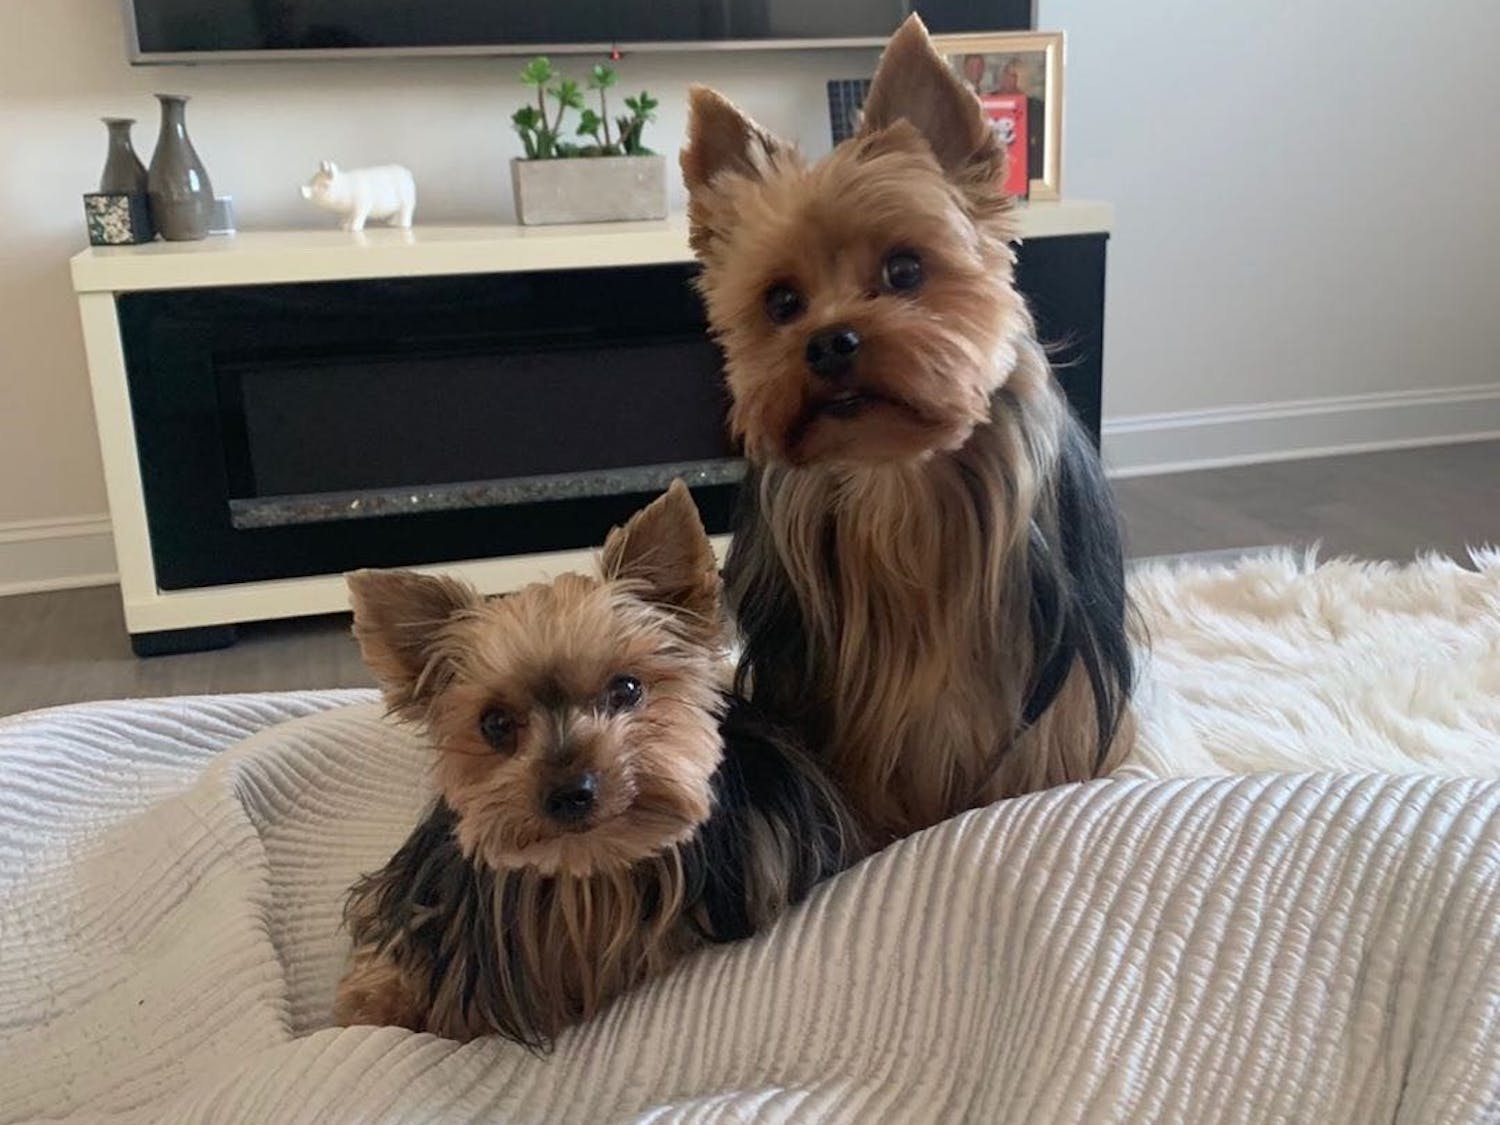 Piglet (left) loves cheese, and Beane (right) is the offspring of the former #1 yorkie in the country.